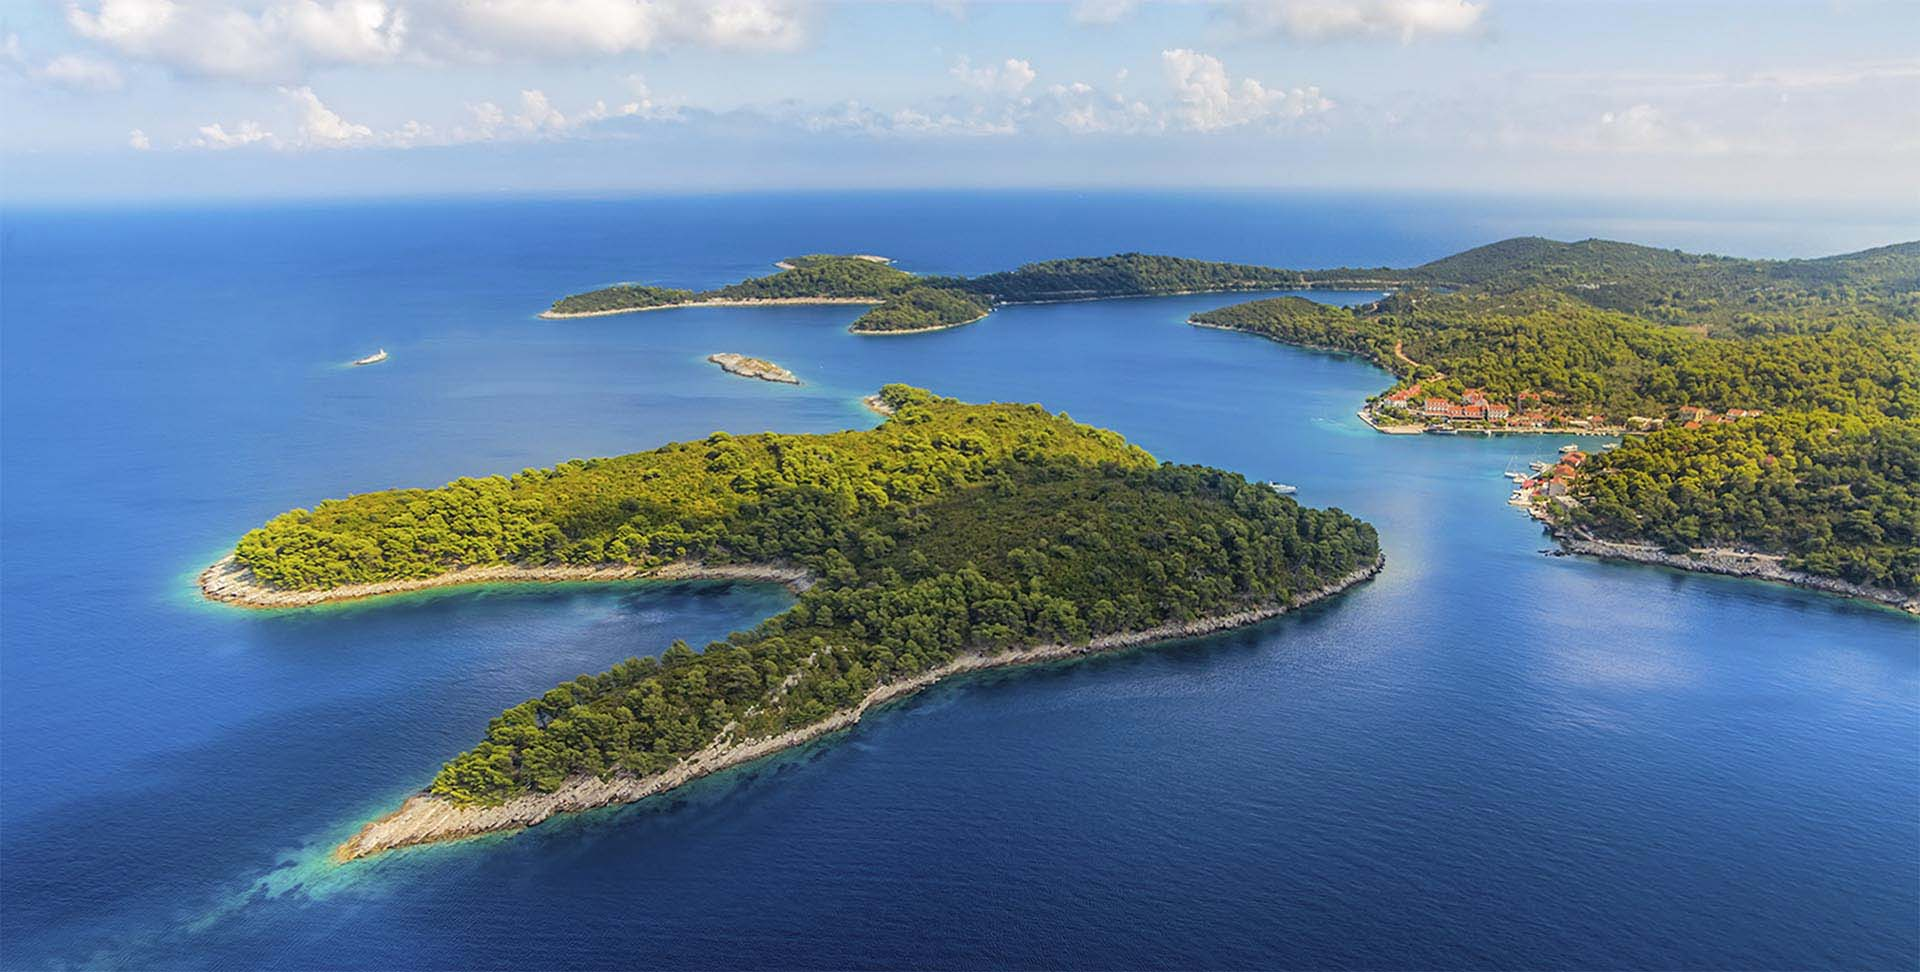 Croatia National Park Mljet